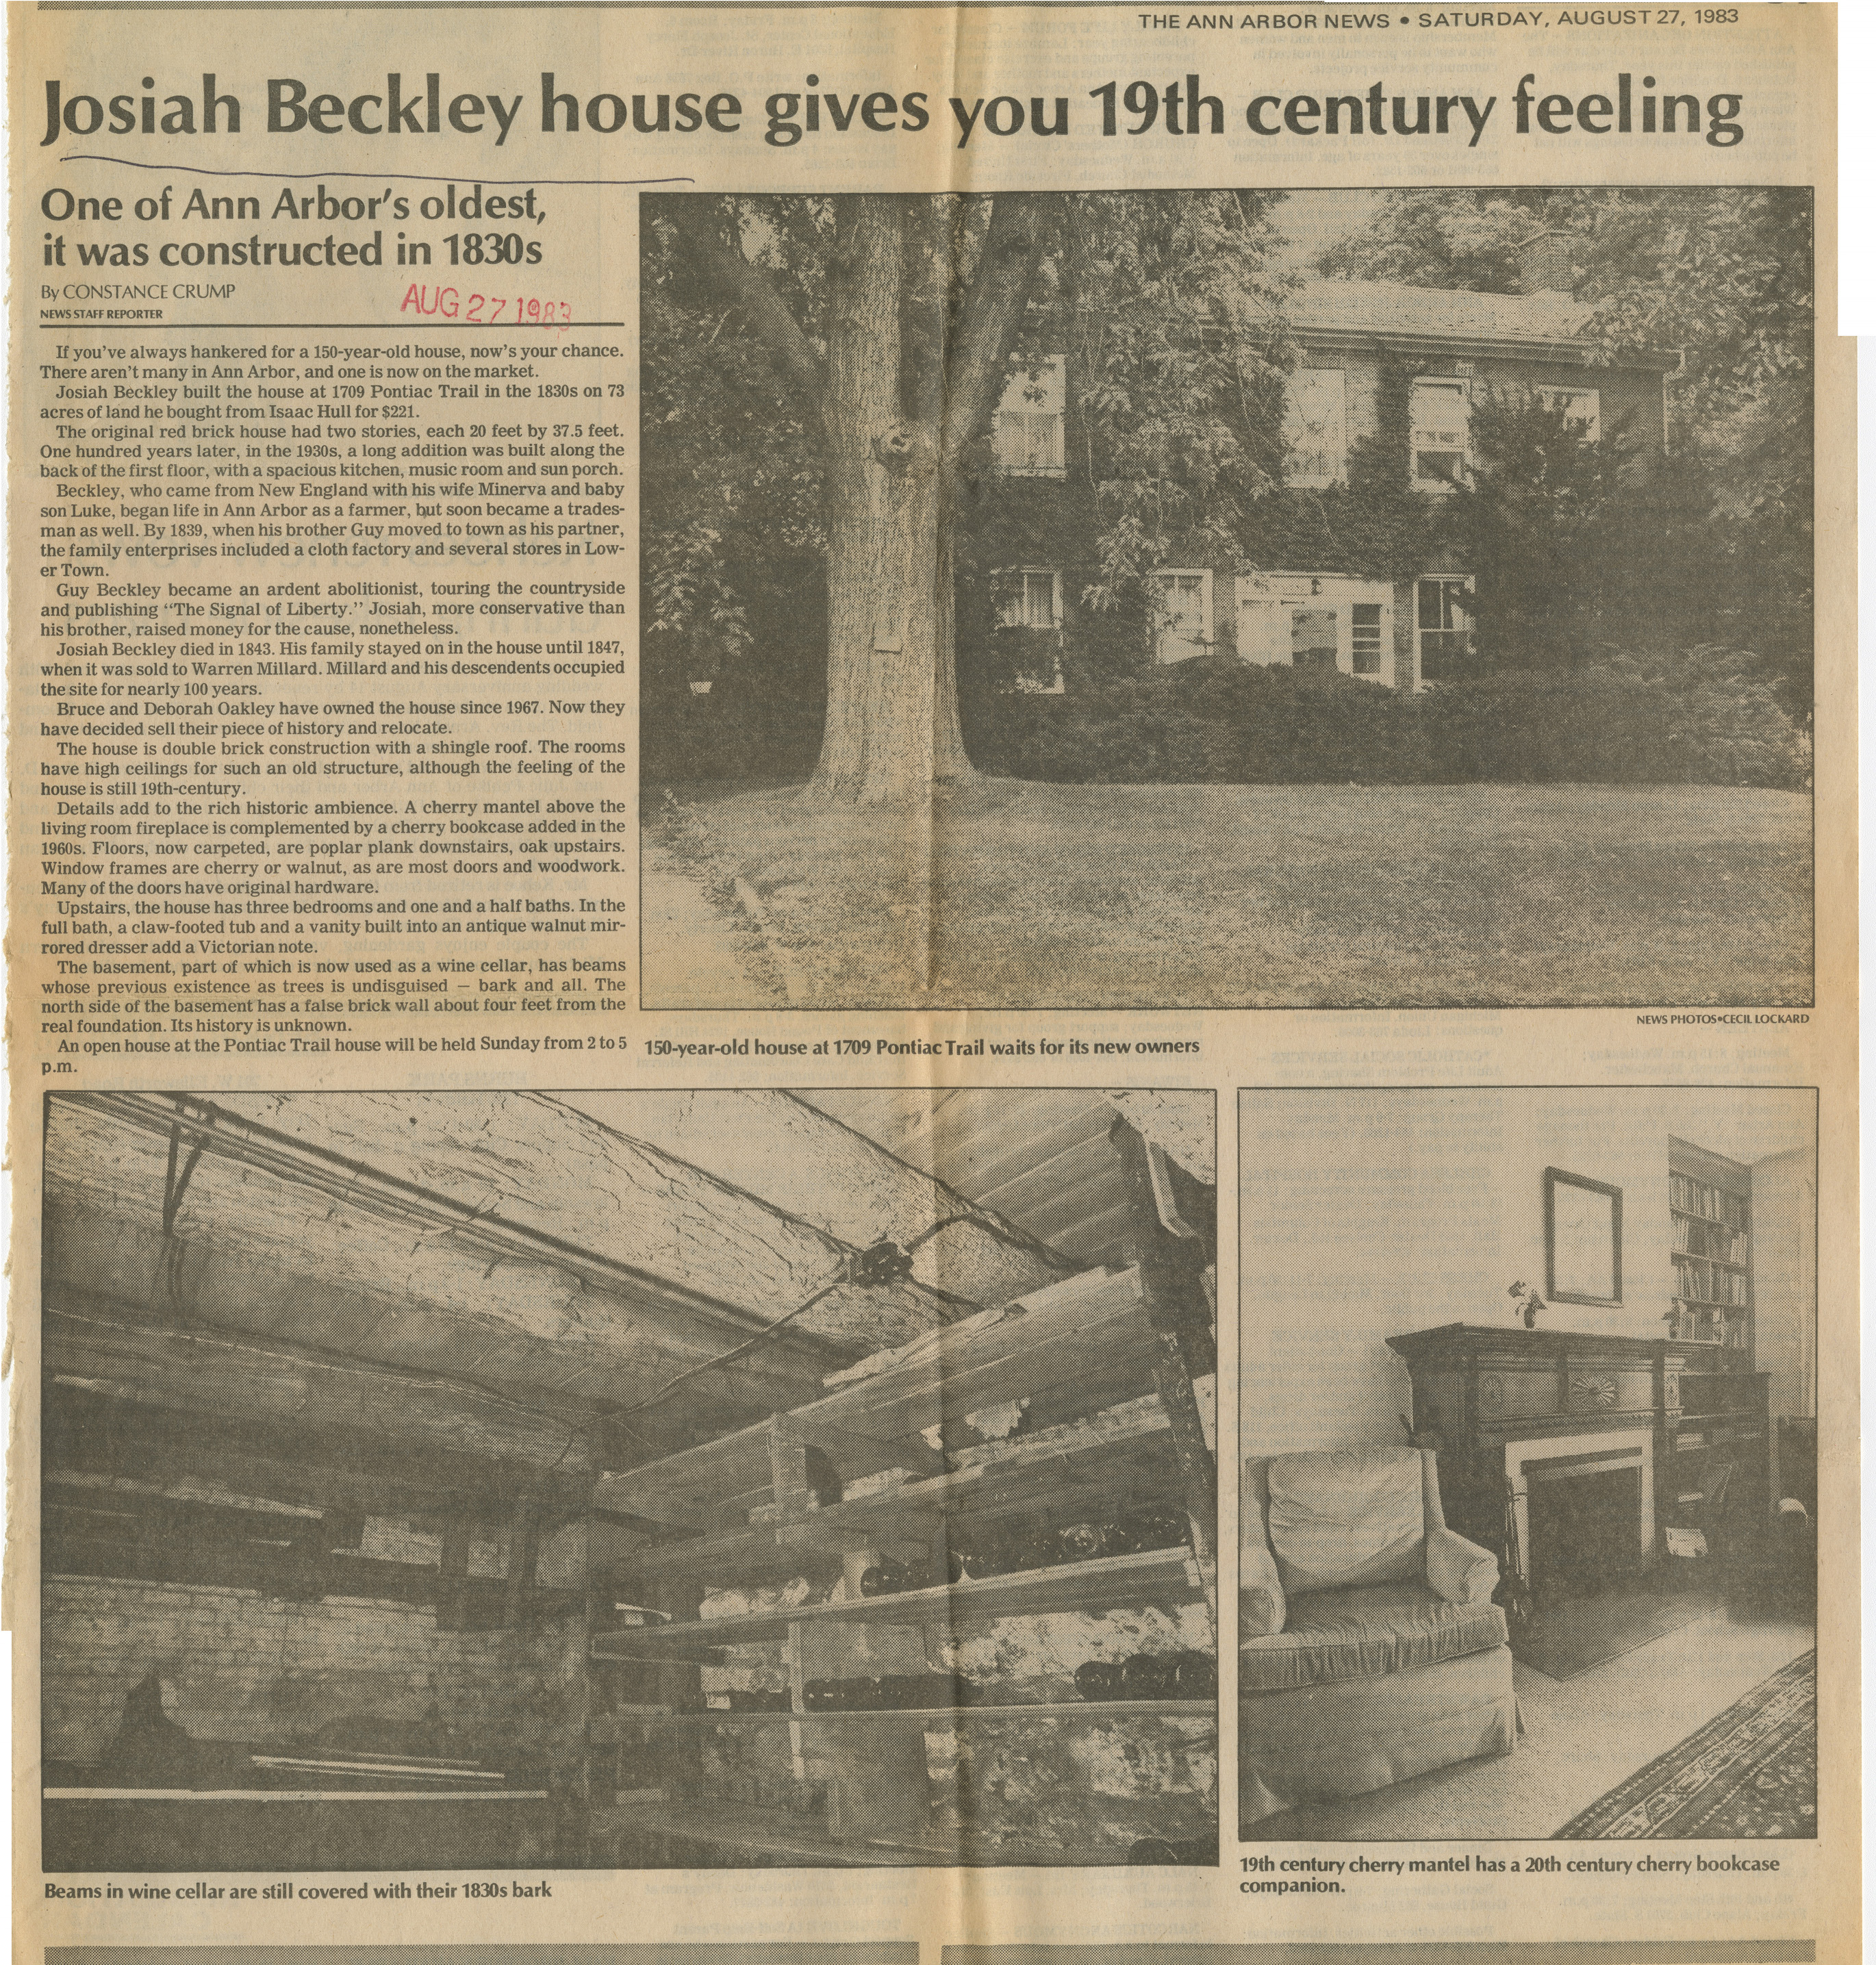 Josiah Beckley house gives you 19th century feeling image